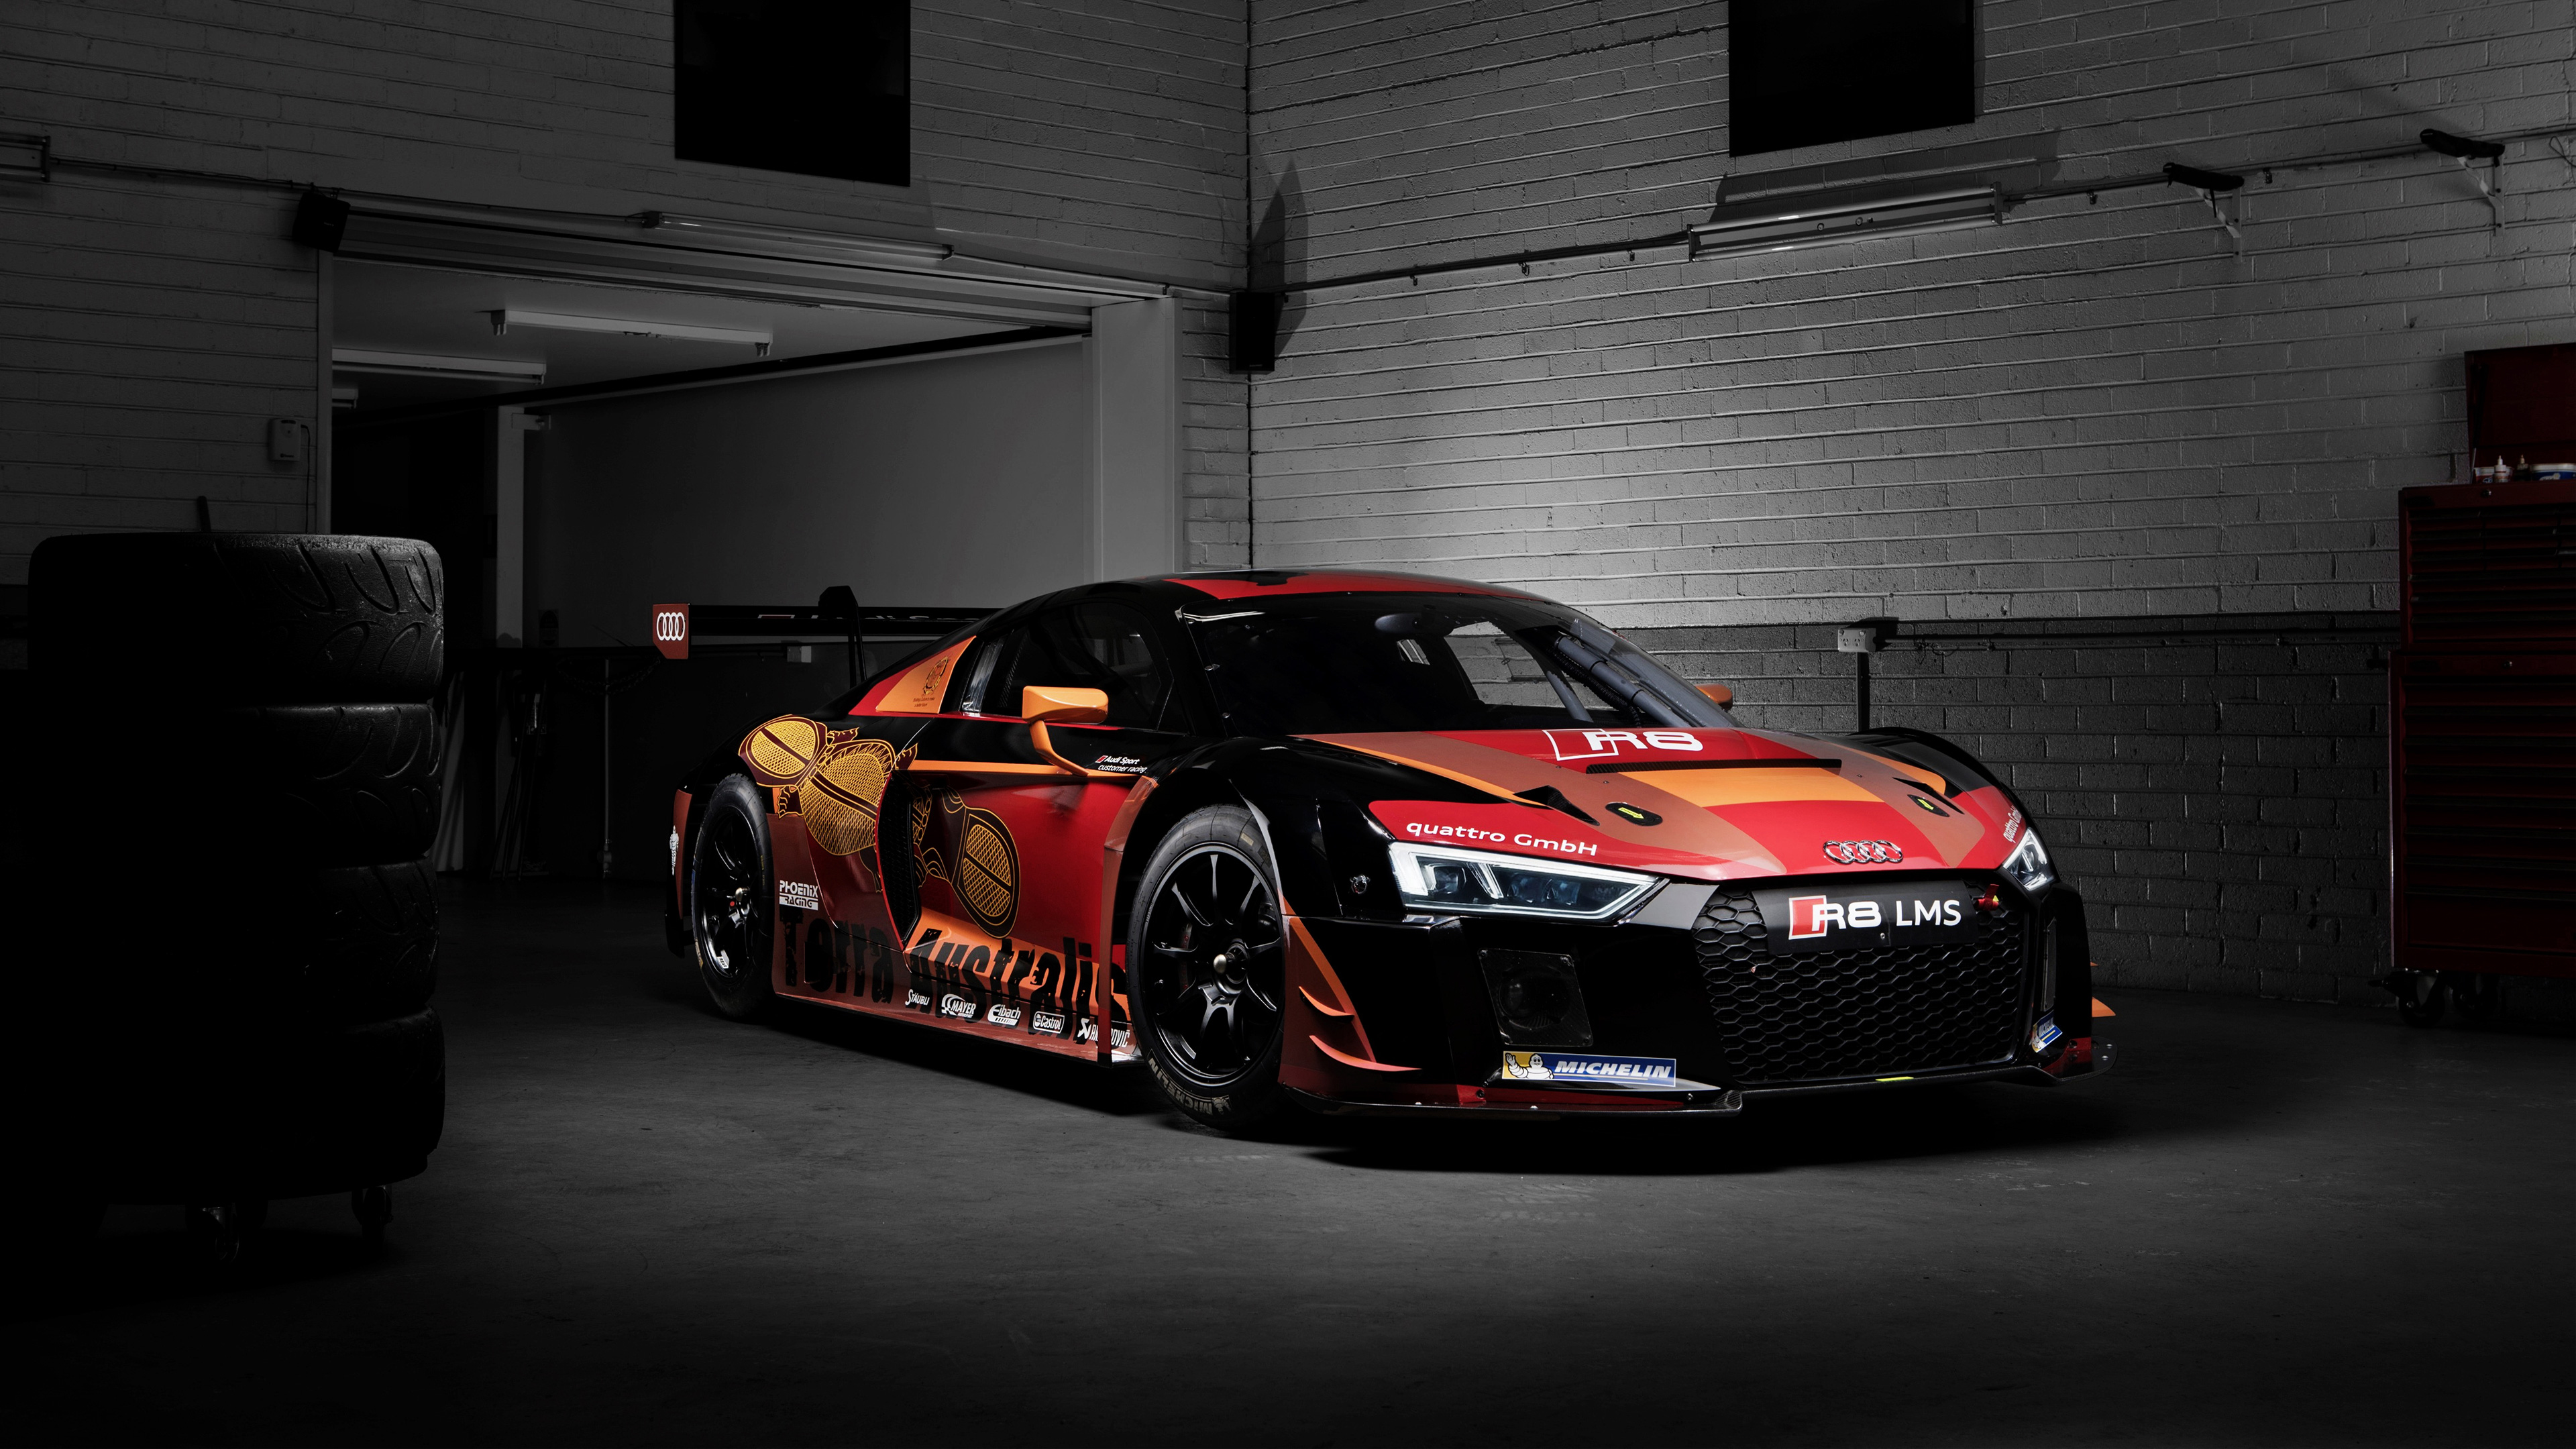 Toyota Of Plano >> 2016 Audi R8 LMS Wallpaper | HD Car Wallpapers | ID #6517